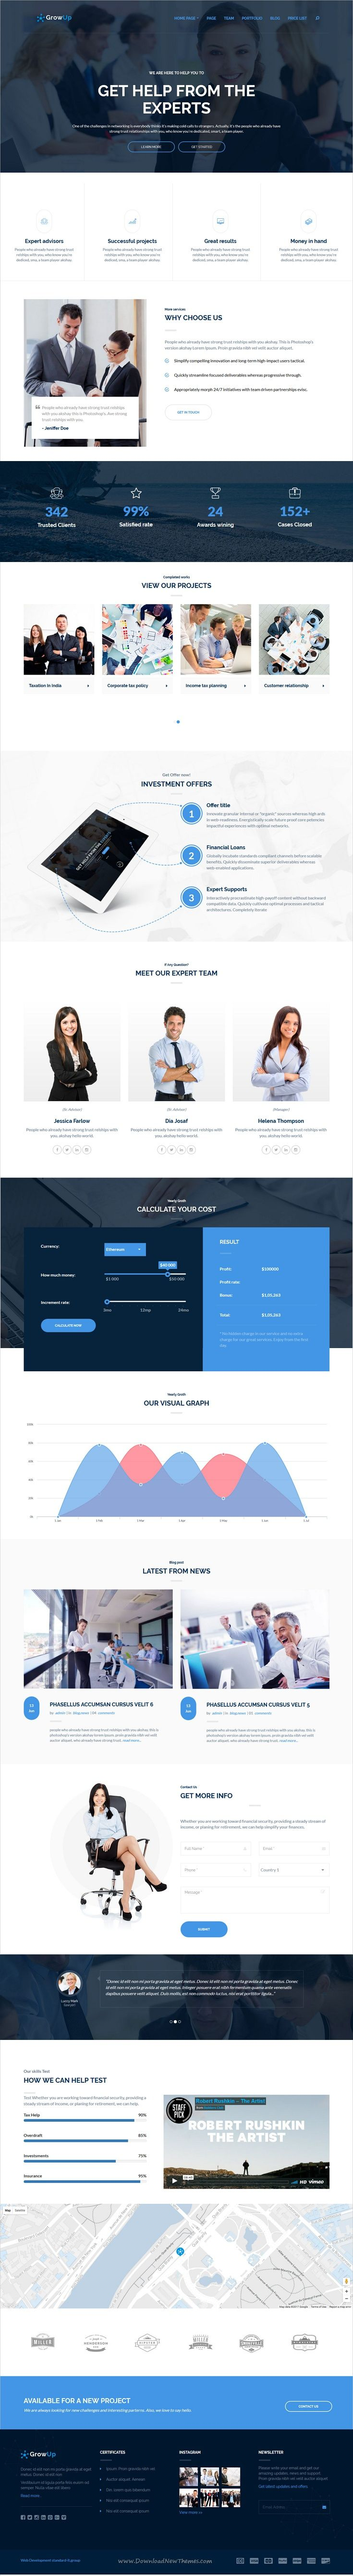 GrowUp is a modern design 6in1 professional #WordPress theme for #business and #financial websites download now➩  https://themeforest.net/item/growup-business-financial-wordpress-theme/18761663?ref=Datasata